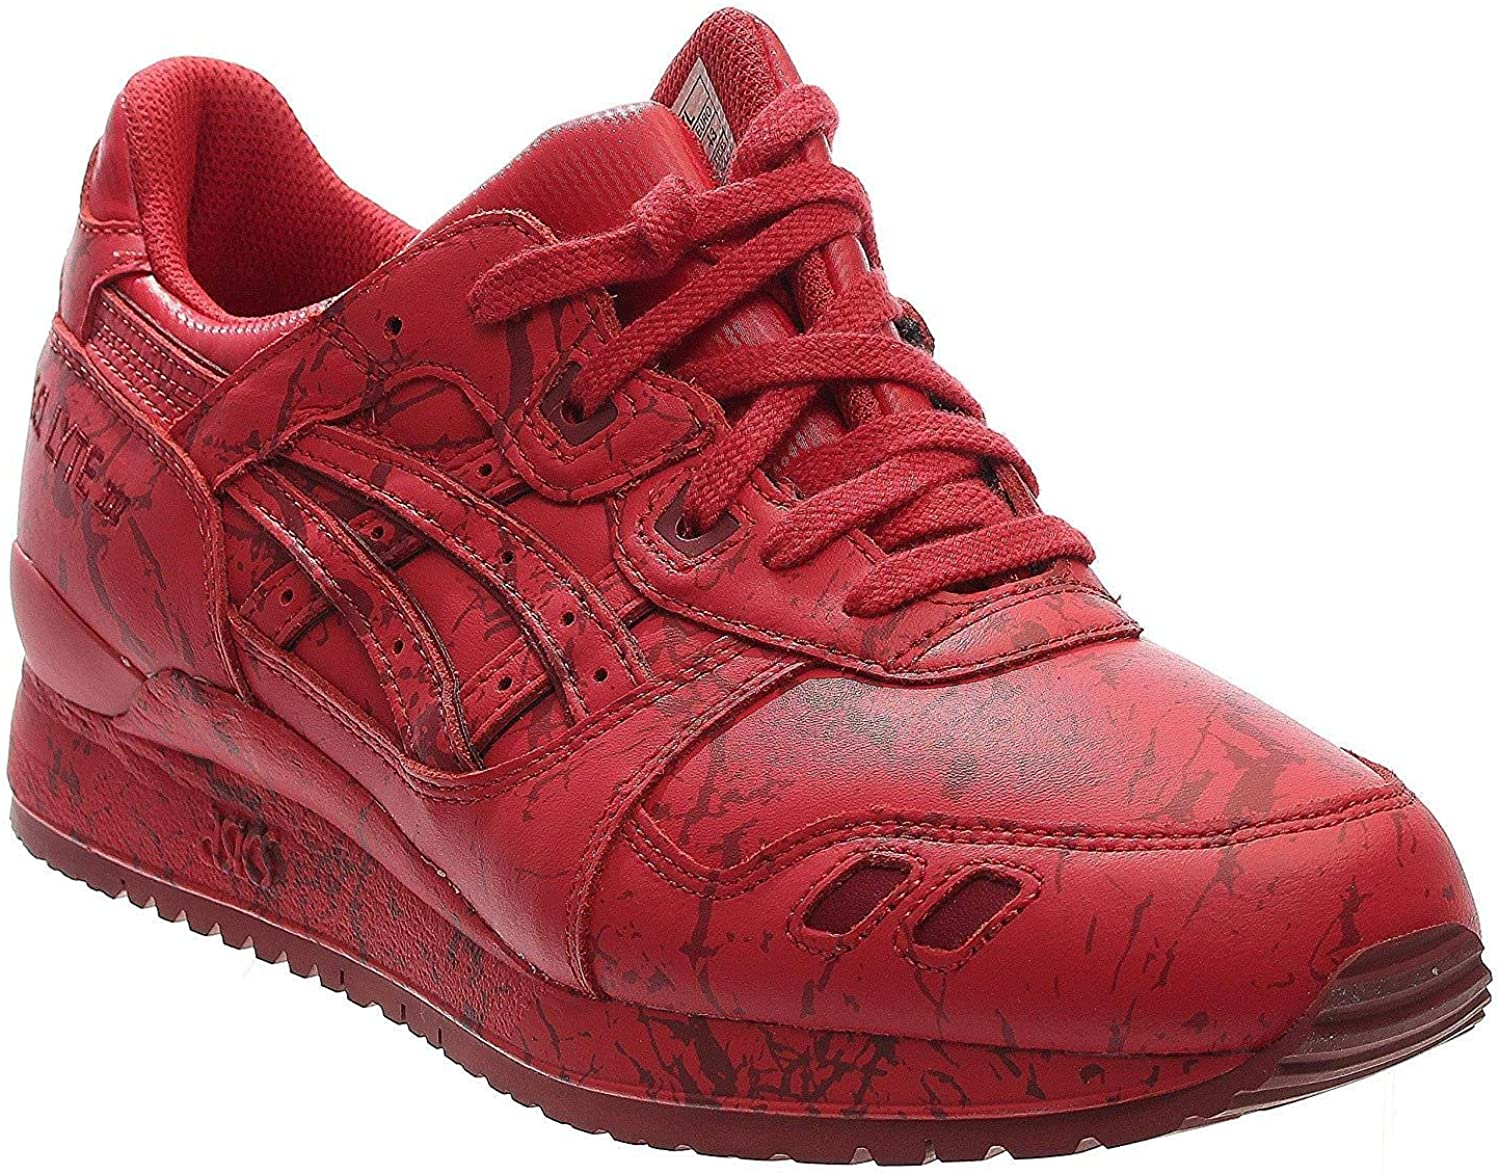 Asics Mens Gel-Lyte Iii Running Sneaker Shoes